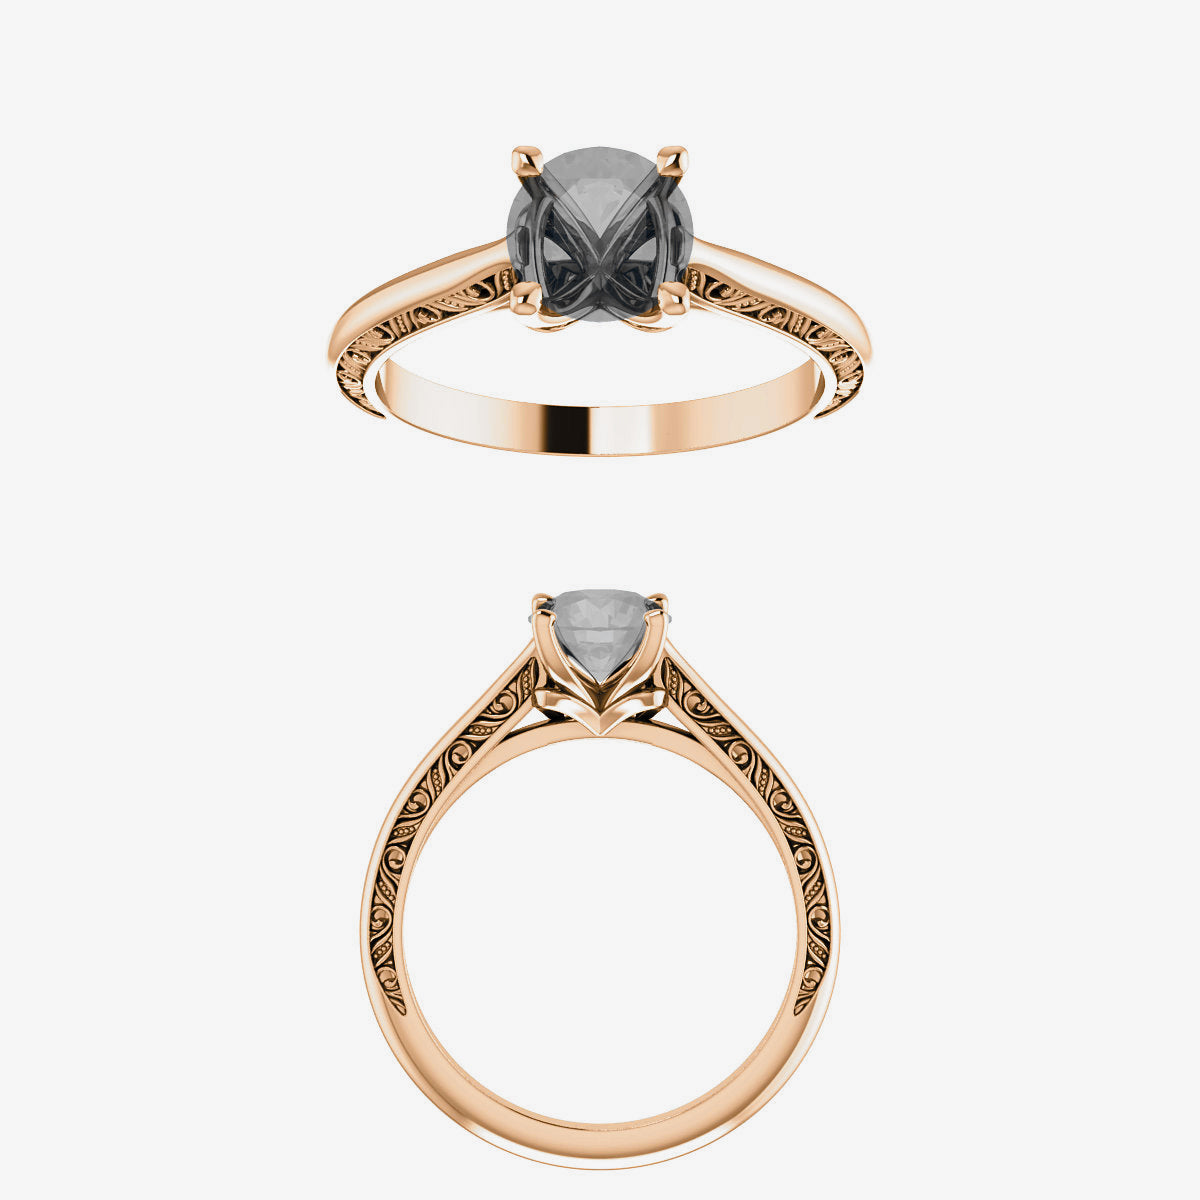 Vivienne setting - Midwinter Co. Alternative Bridal Rings and Modern Fine Jewelry